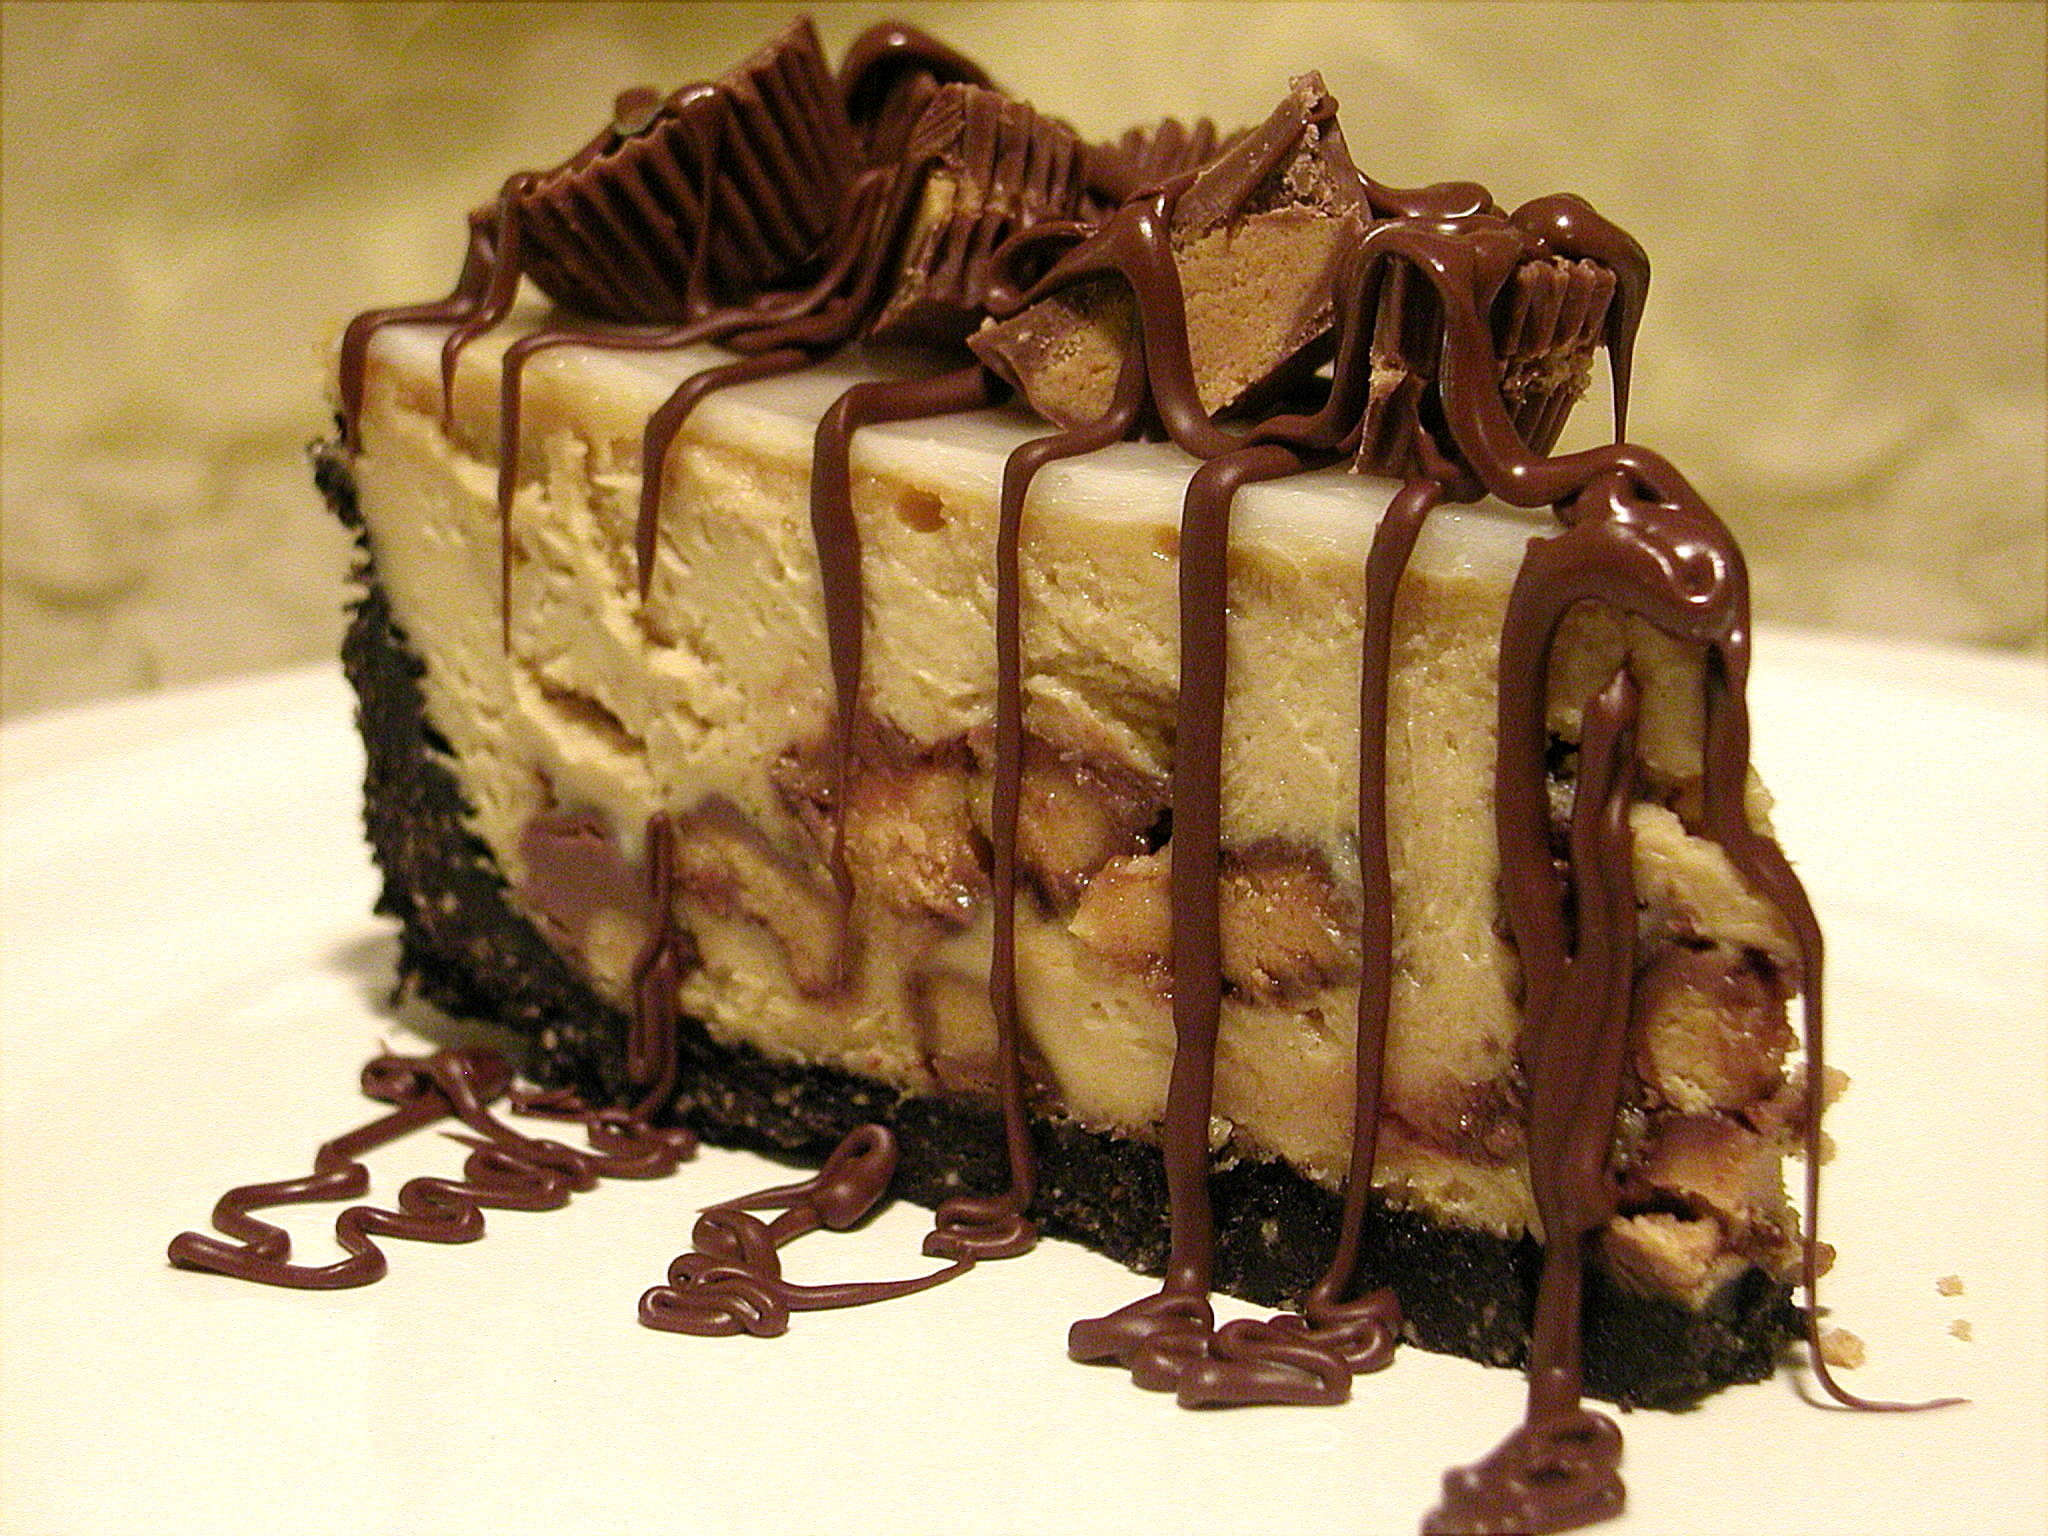 Ruggles Reese's Peanut Butter Cup Cheesecake Recipe